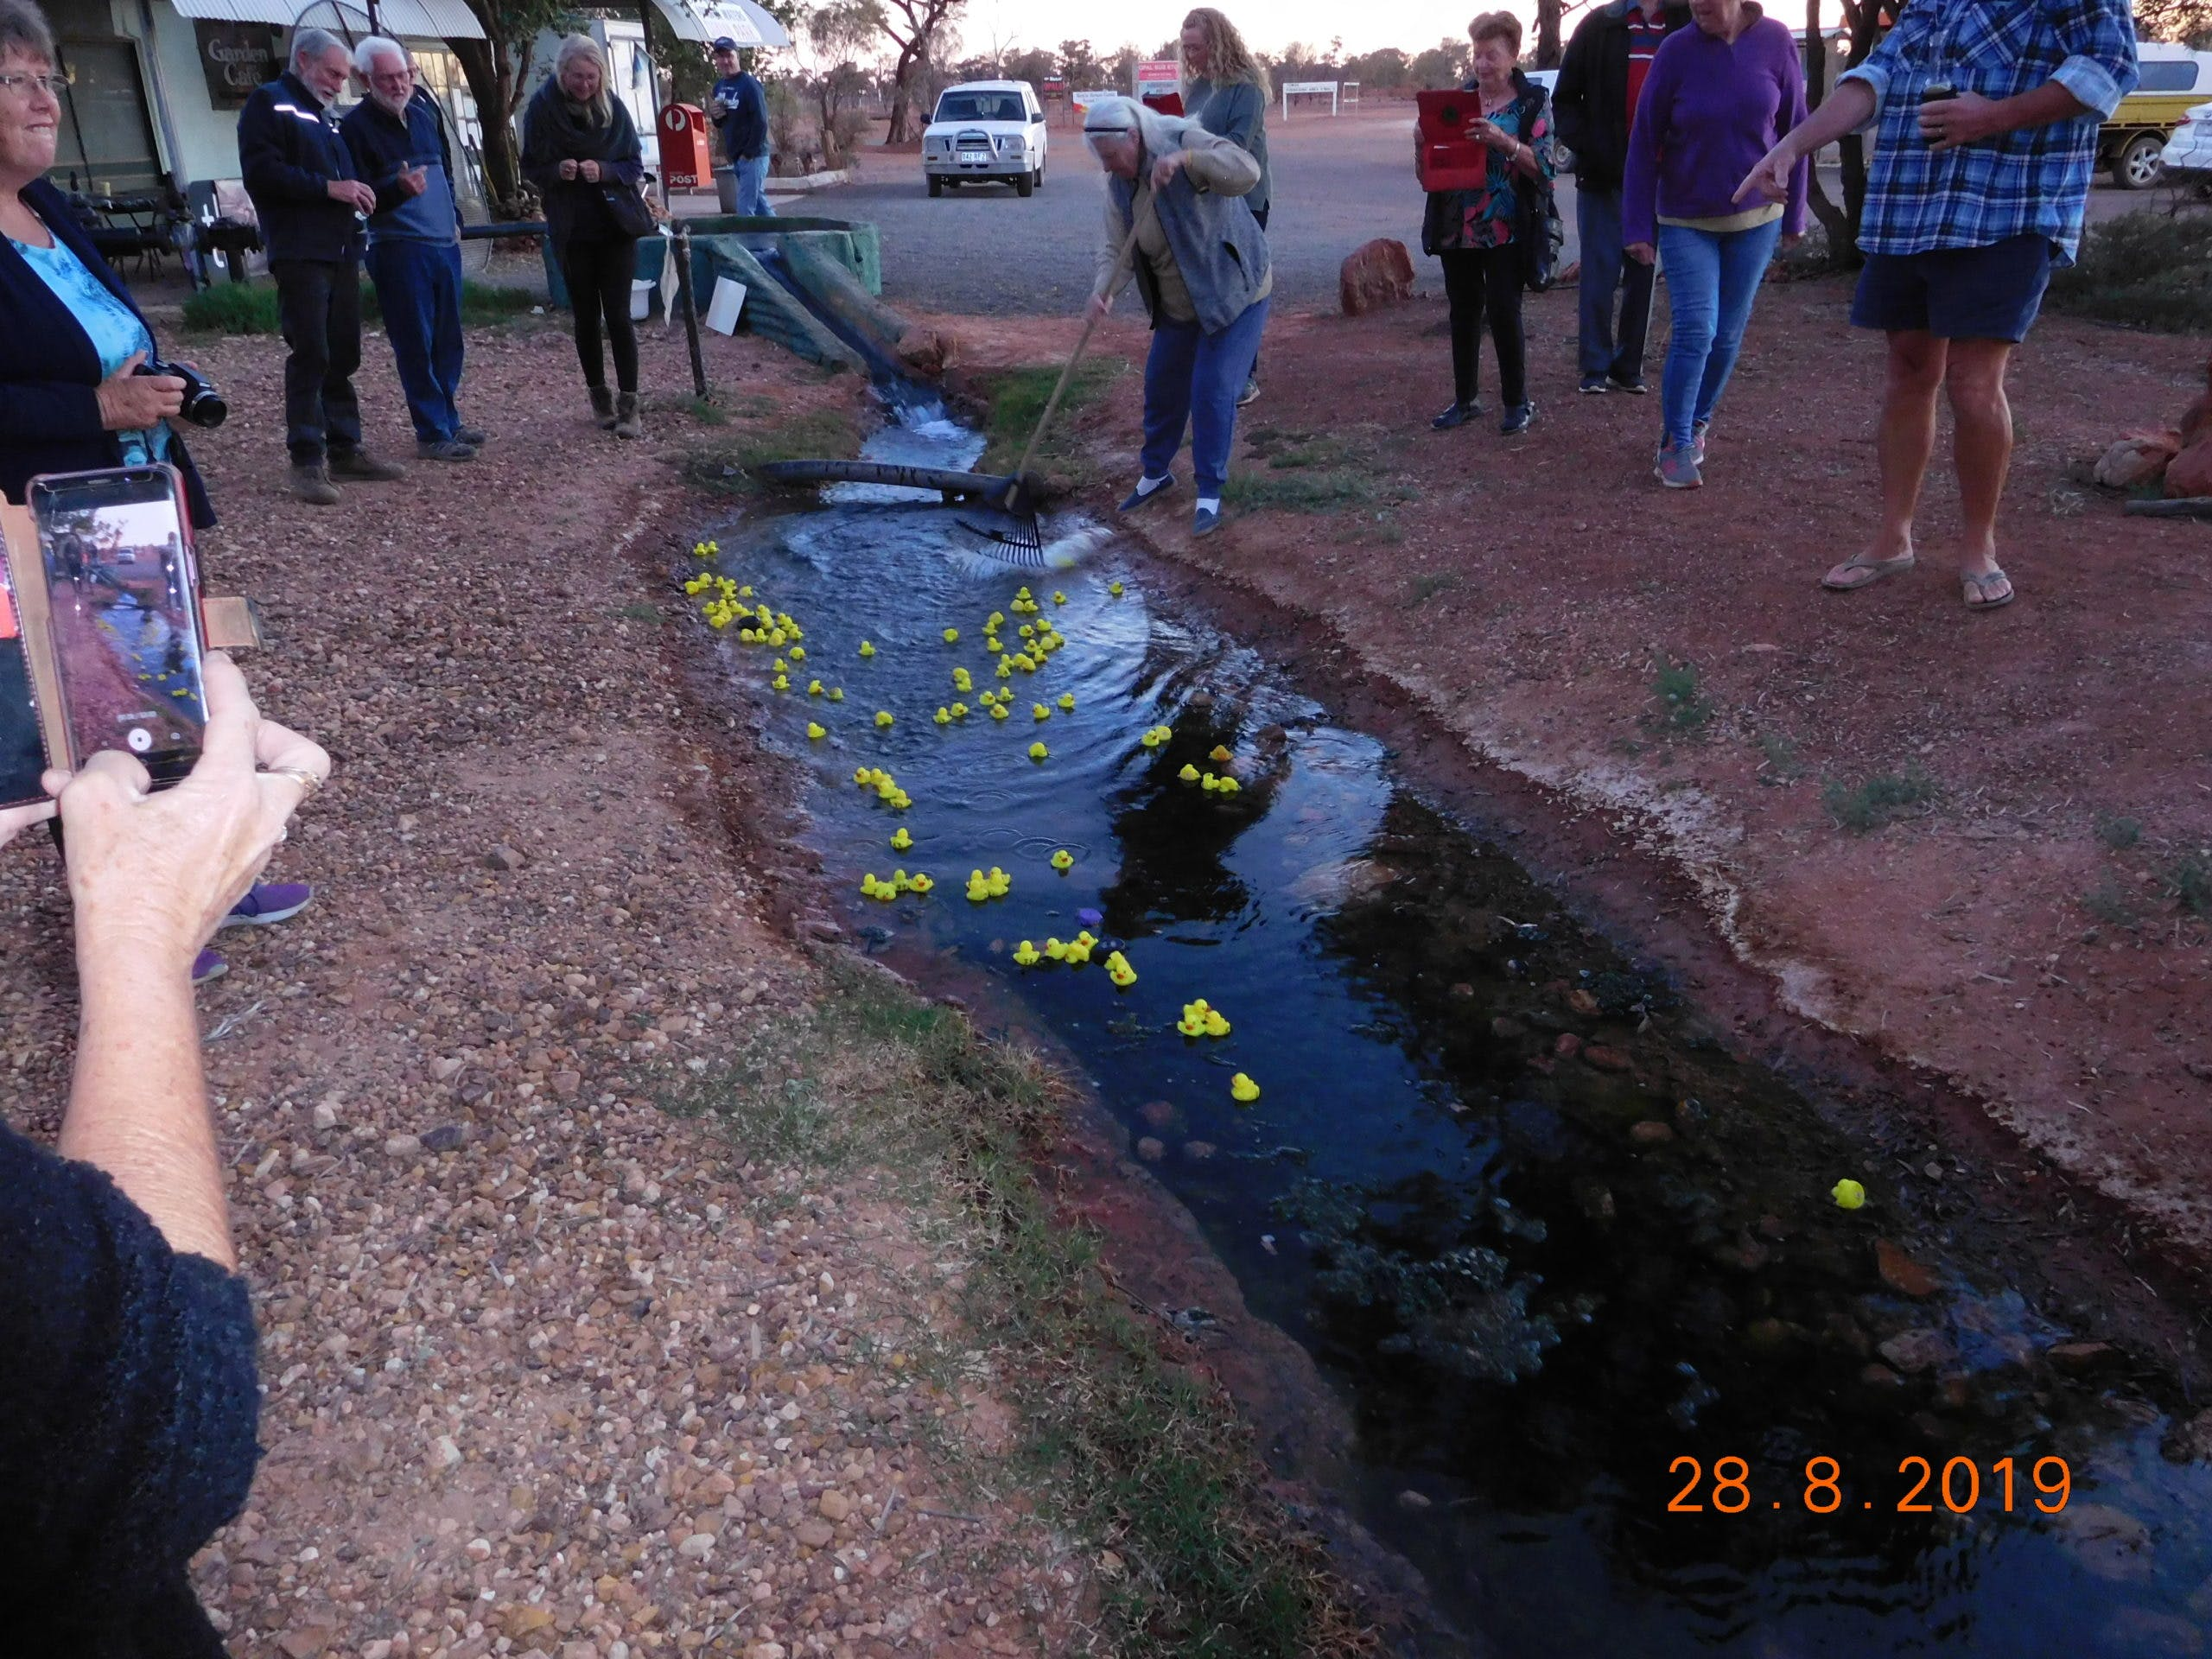 Dinner and Duck races